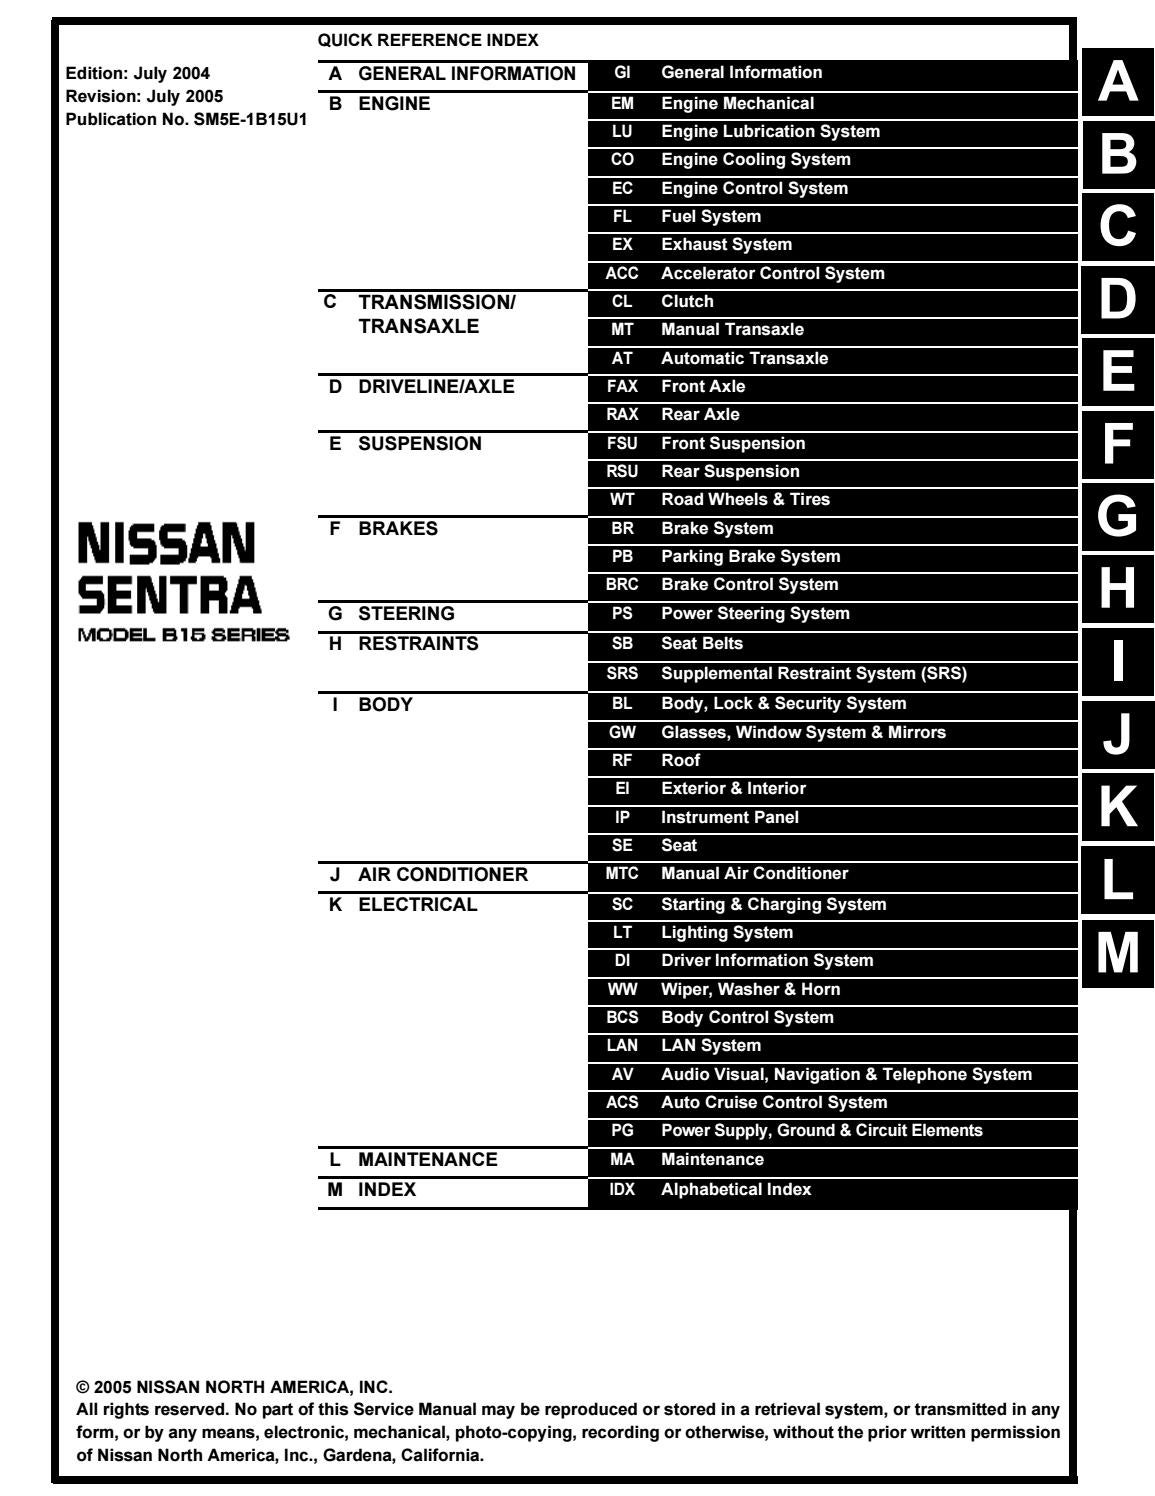 Nissan Sentra Service Manual: Precautions